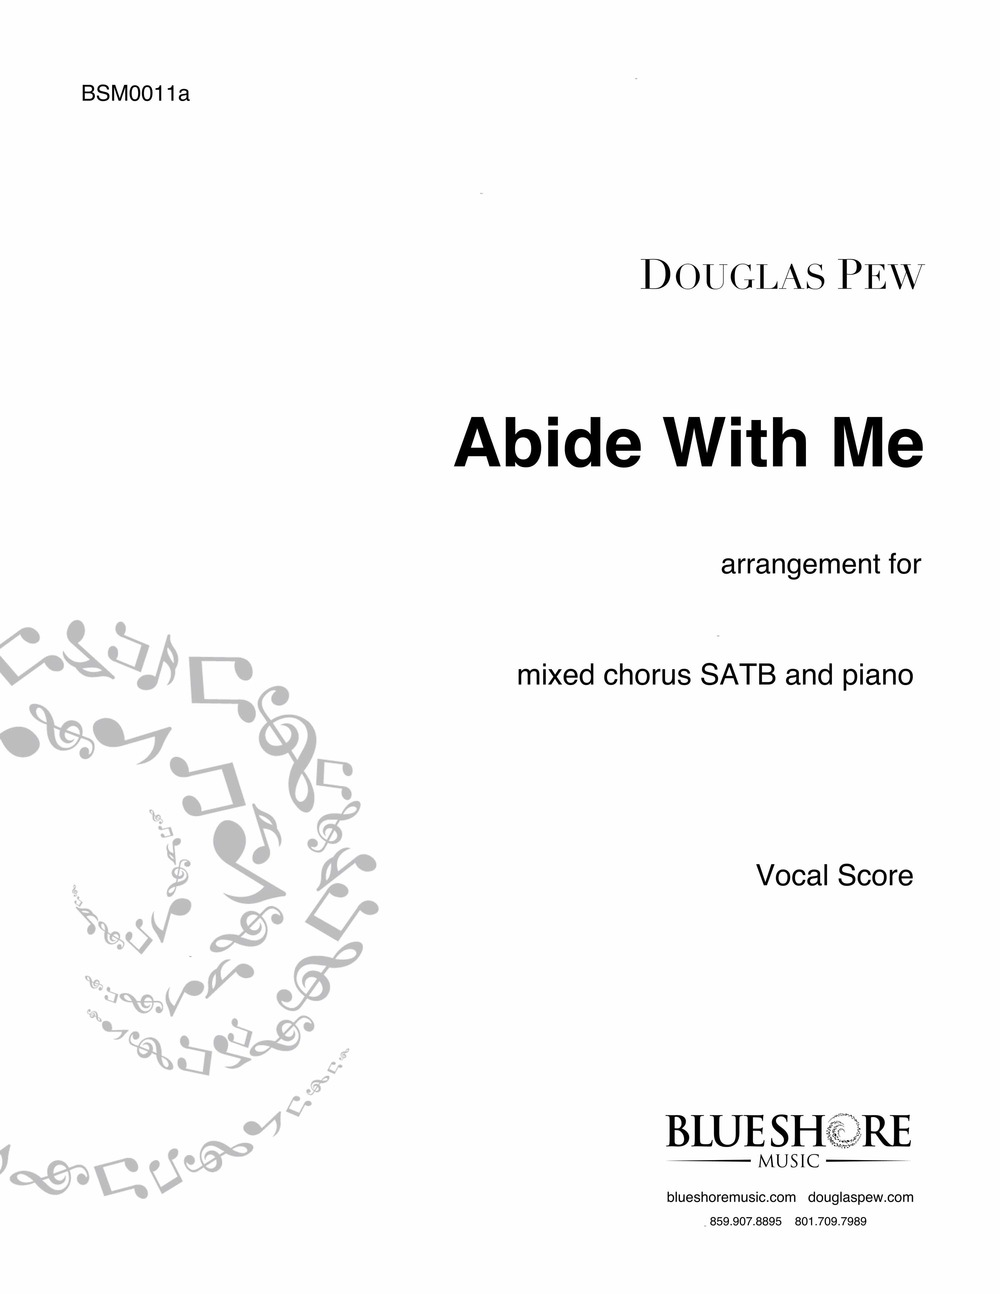 Abide With Me,for SATB and Organ